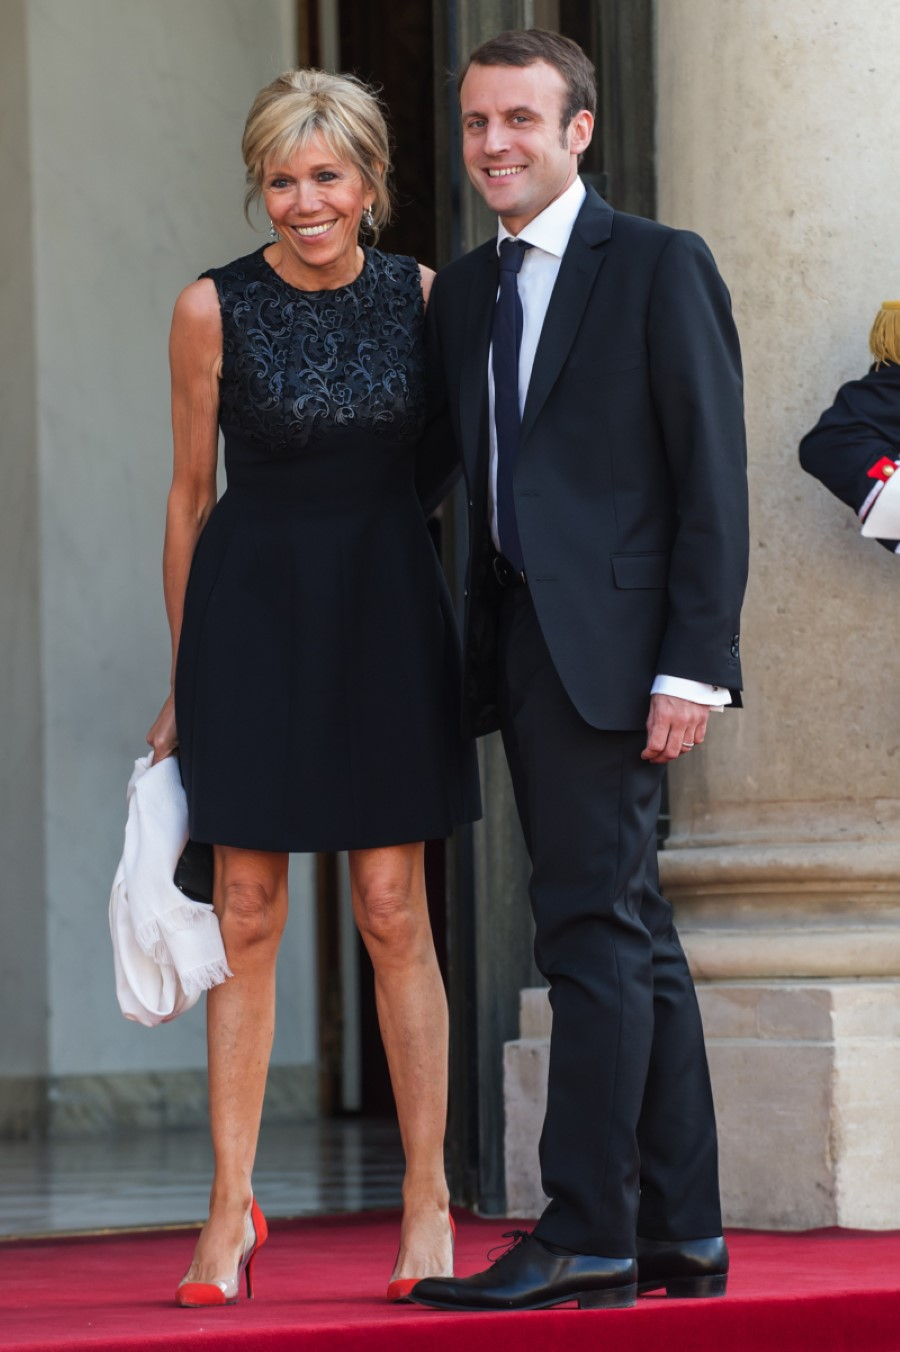 France's Economy Minister Emmanuel Macron and his wife Brigitte Trogneux pose for photographers as they arrive at the Elysee Palace in Paris, France, Tuesday, June 2, 2015. (AP Photo/Kamil Zihnioglu)